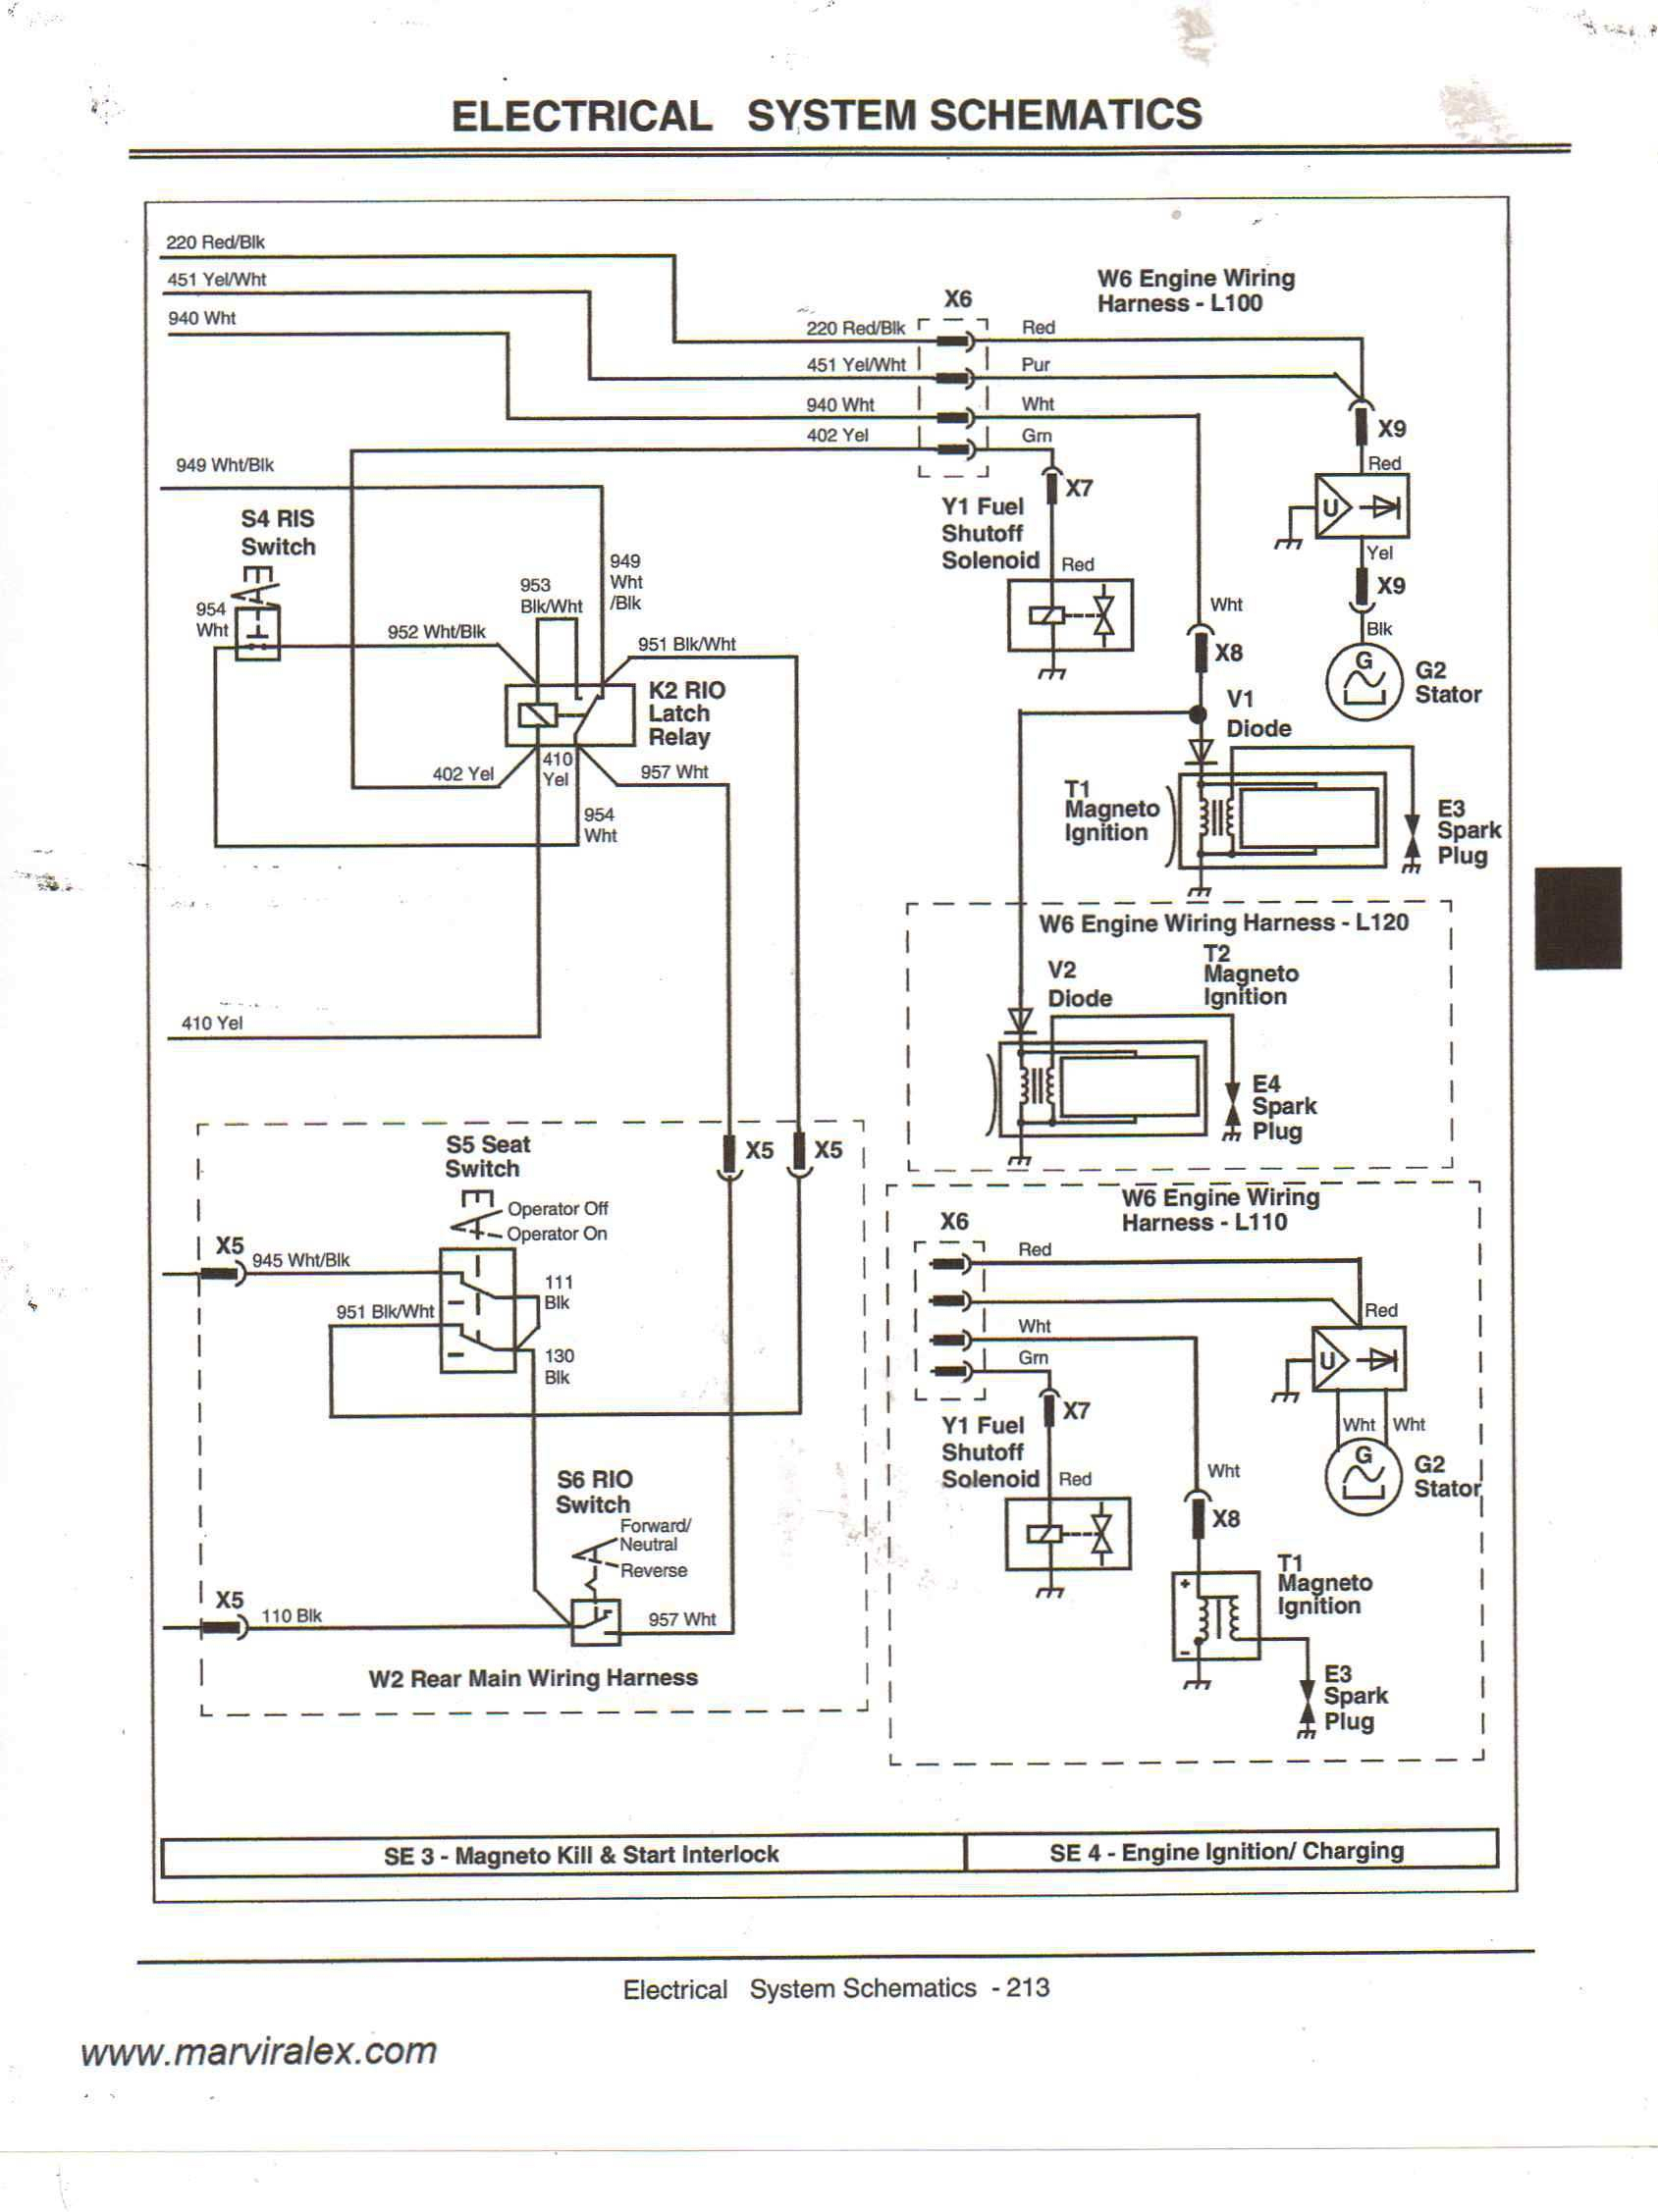 John Deere 6310 Wiring Diagram | Manual E-Books - John Deere Wiring Diagram